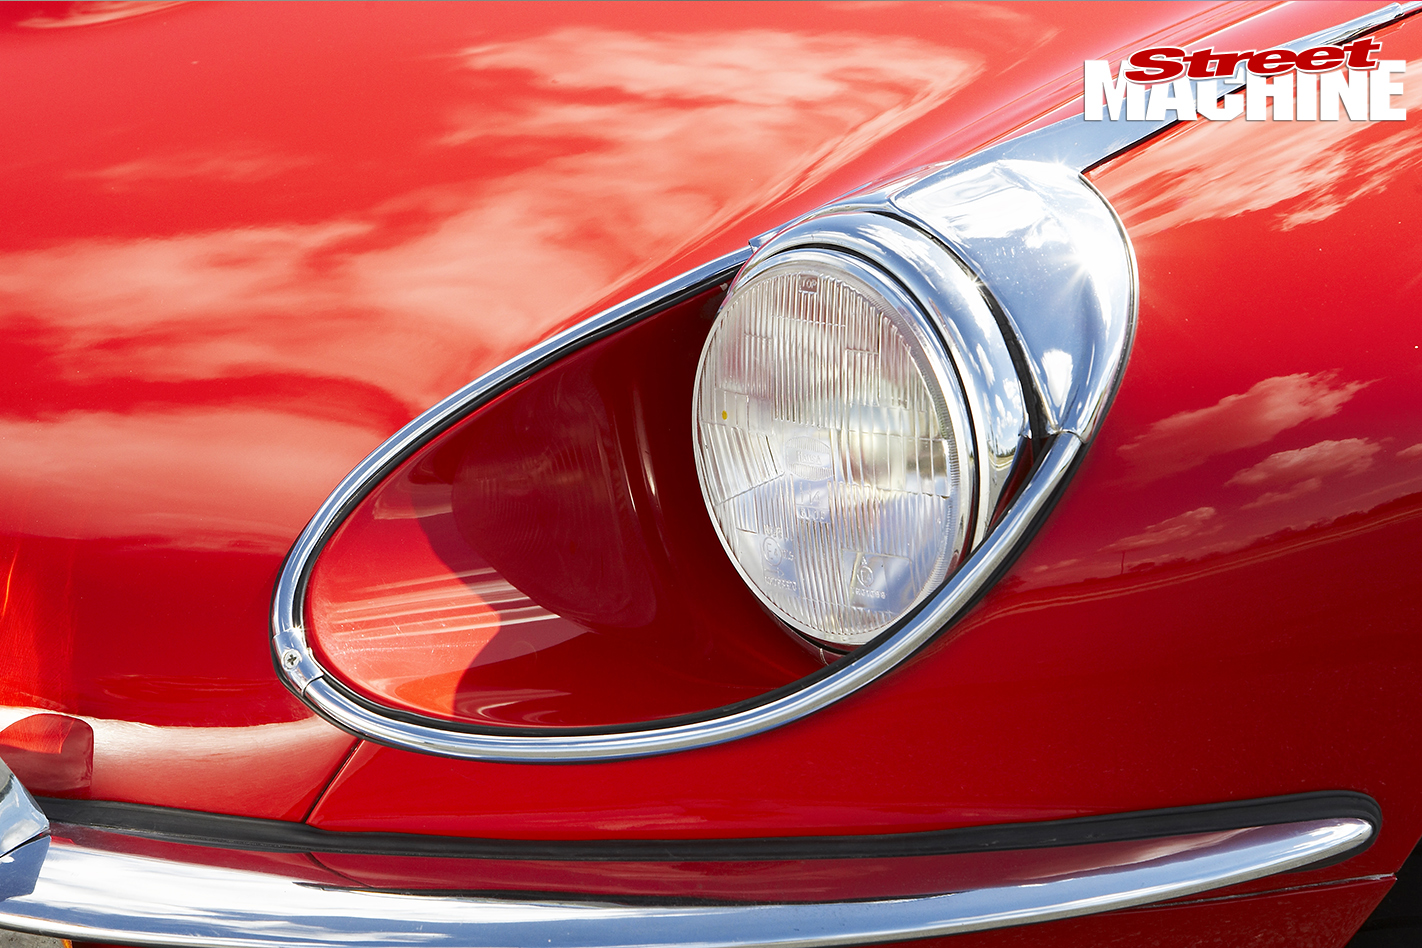 E-type -Jaguar -headlight